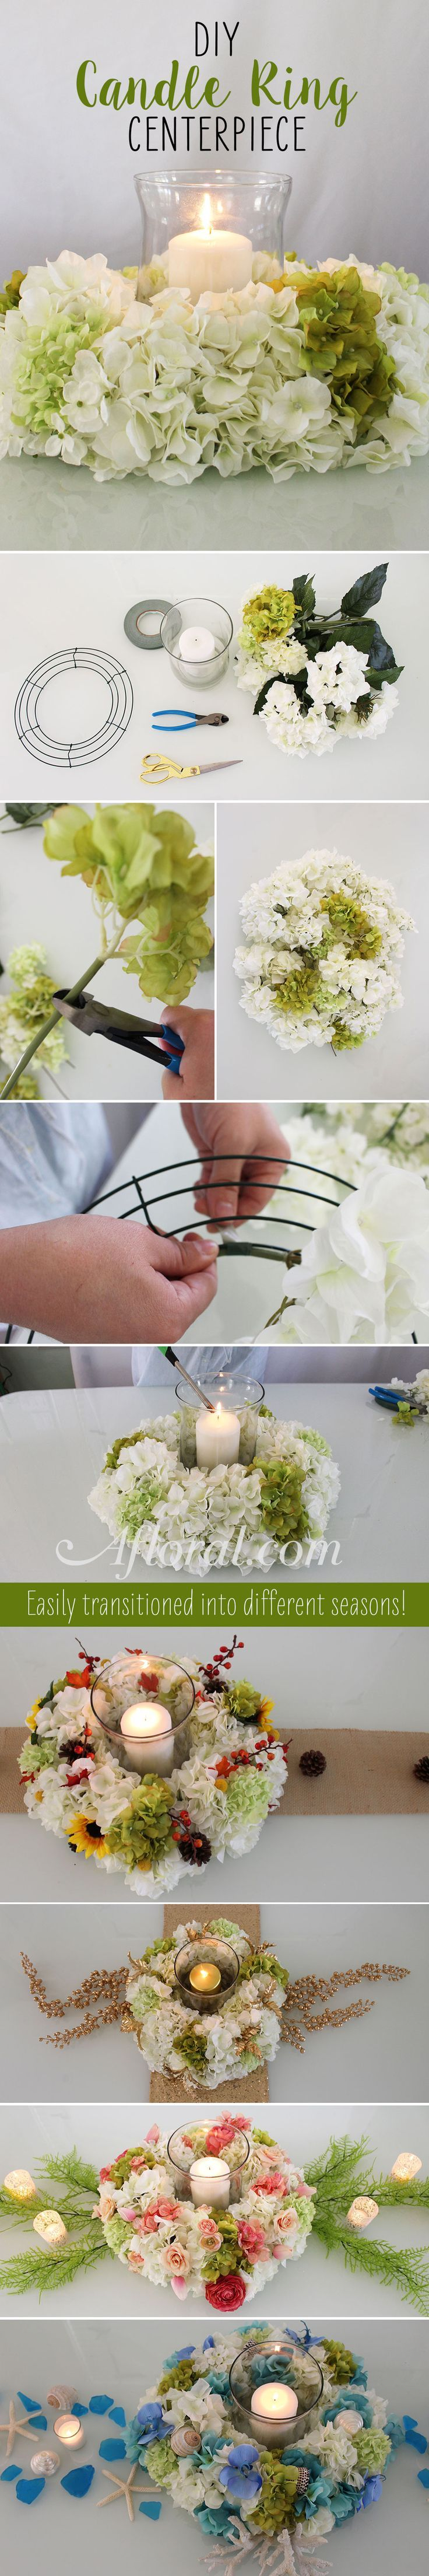 DIY Hydrangea Candle Ring Centerpiece.  Create this gorgeous hydrangea centerpiece with a wire wreath form and silk hydrangeas and decorate with your favorite silk flowers for every holiday!  Find everything you need at http://Afloral.com.